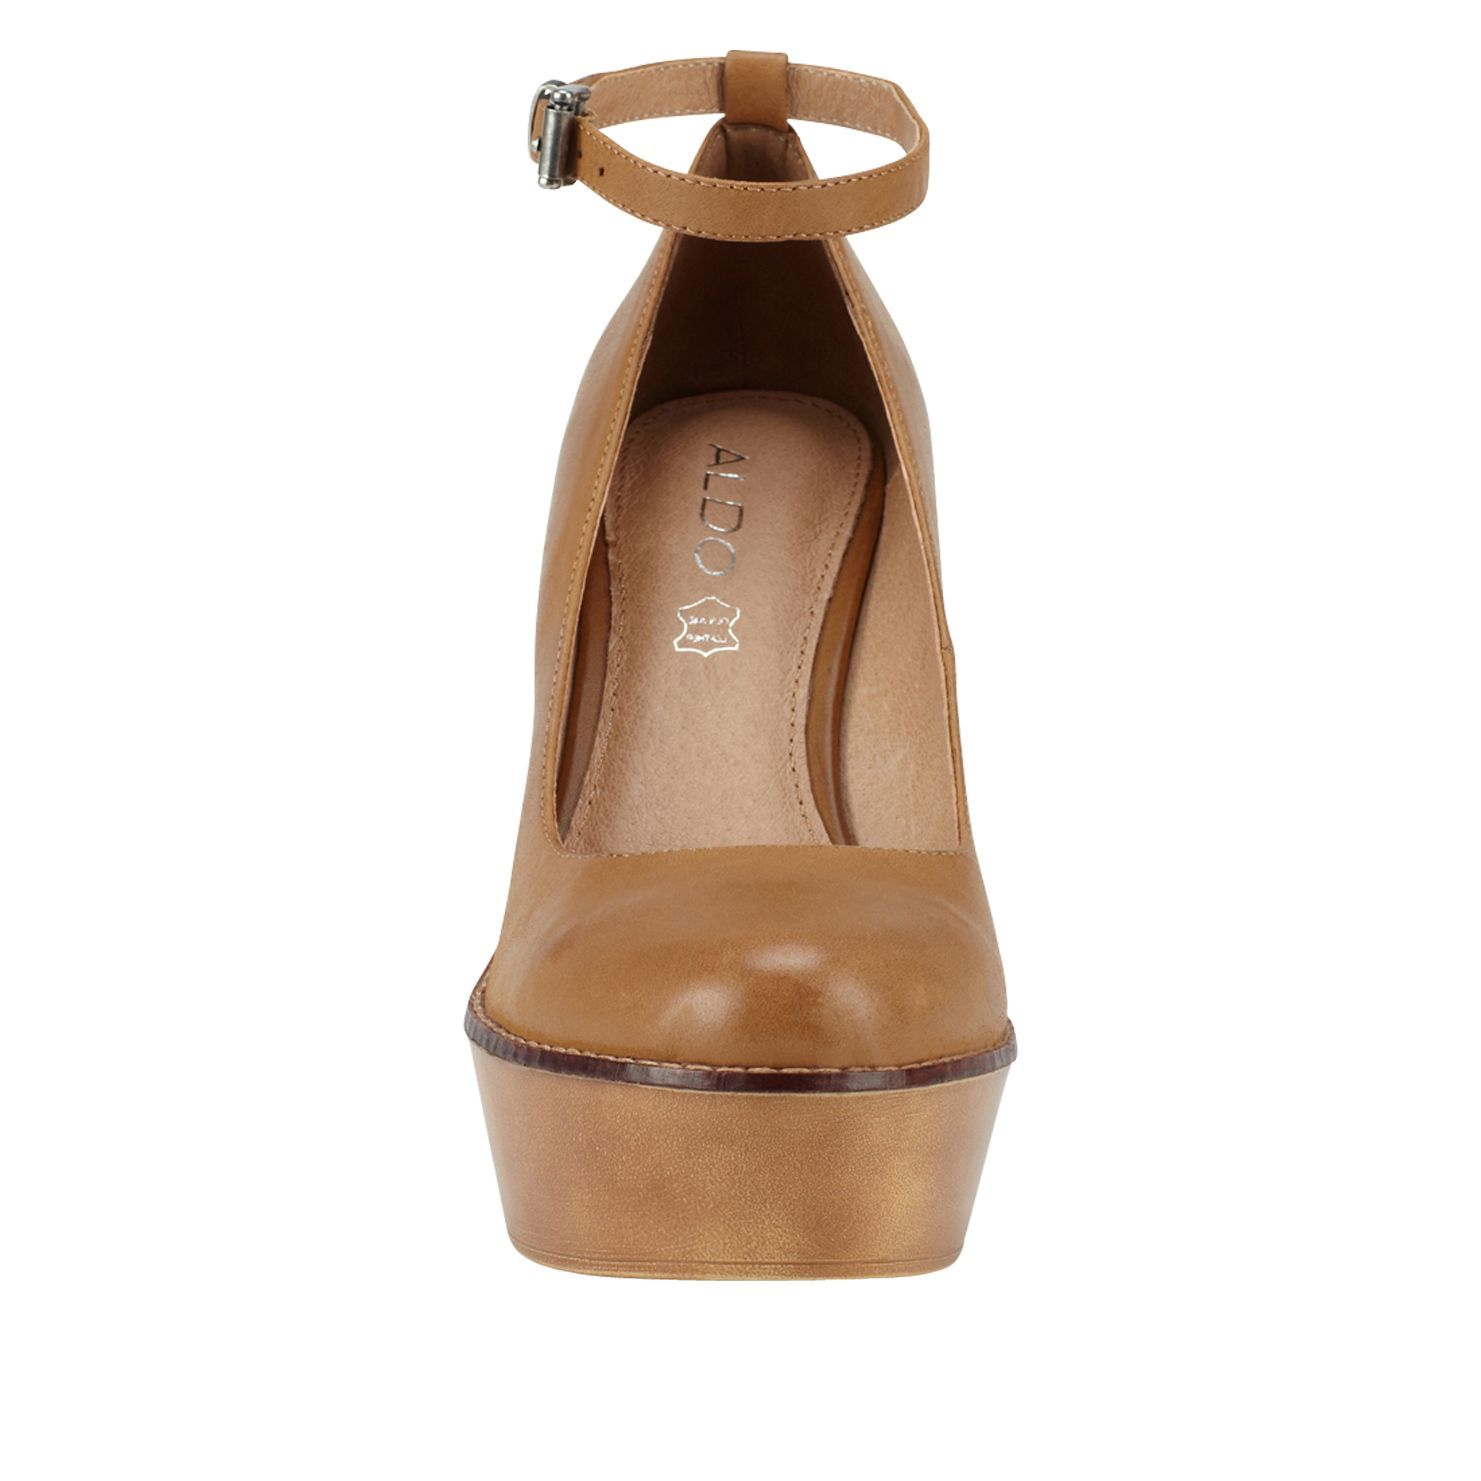 Grendahl round toe wedge shoes